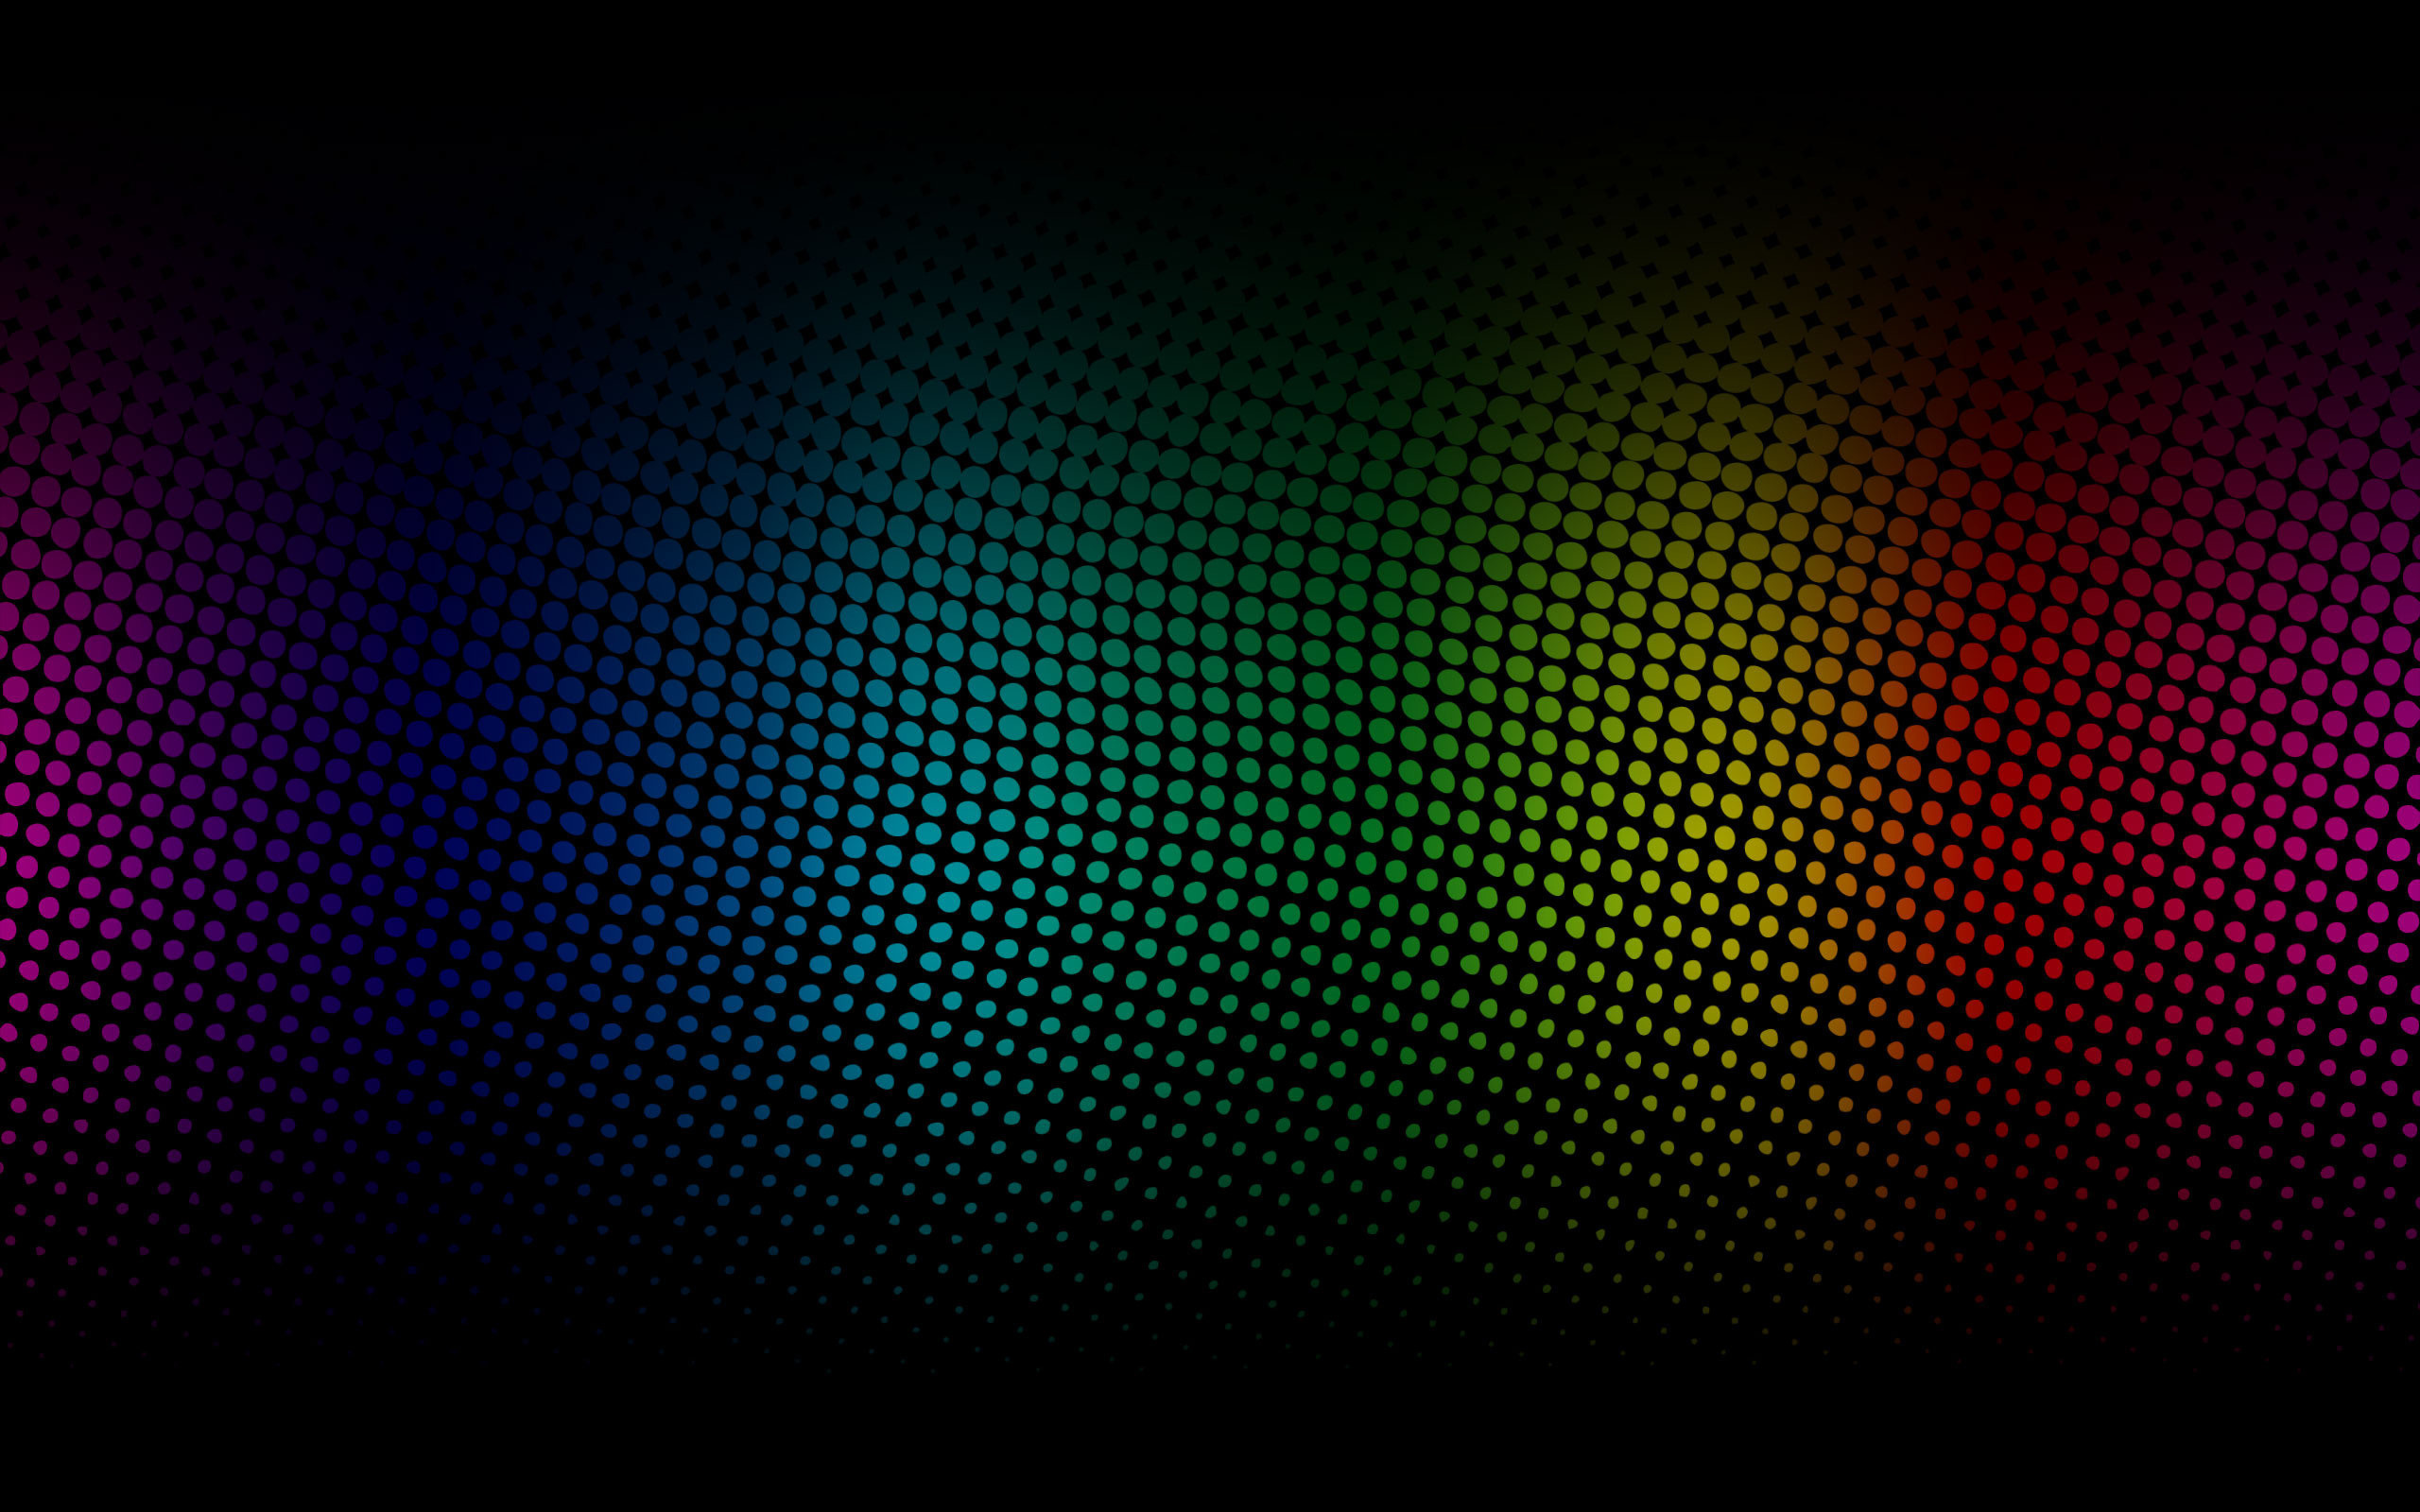 2560x1600 Black Rainbow HD Wallpaper 7 - 2560 X 1600